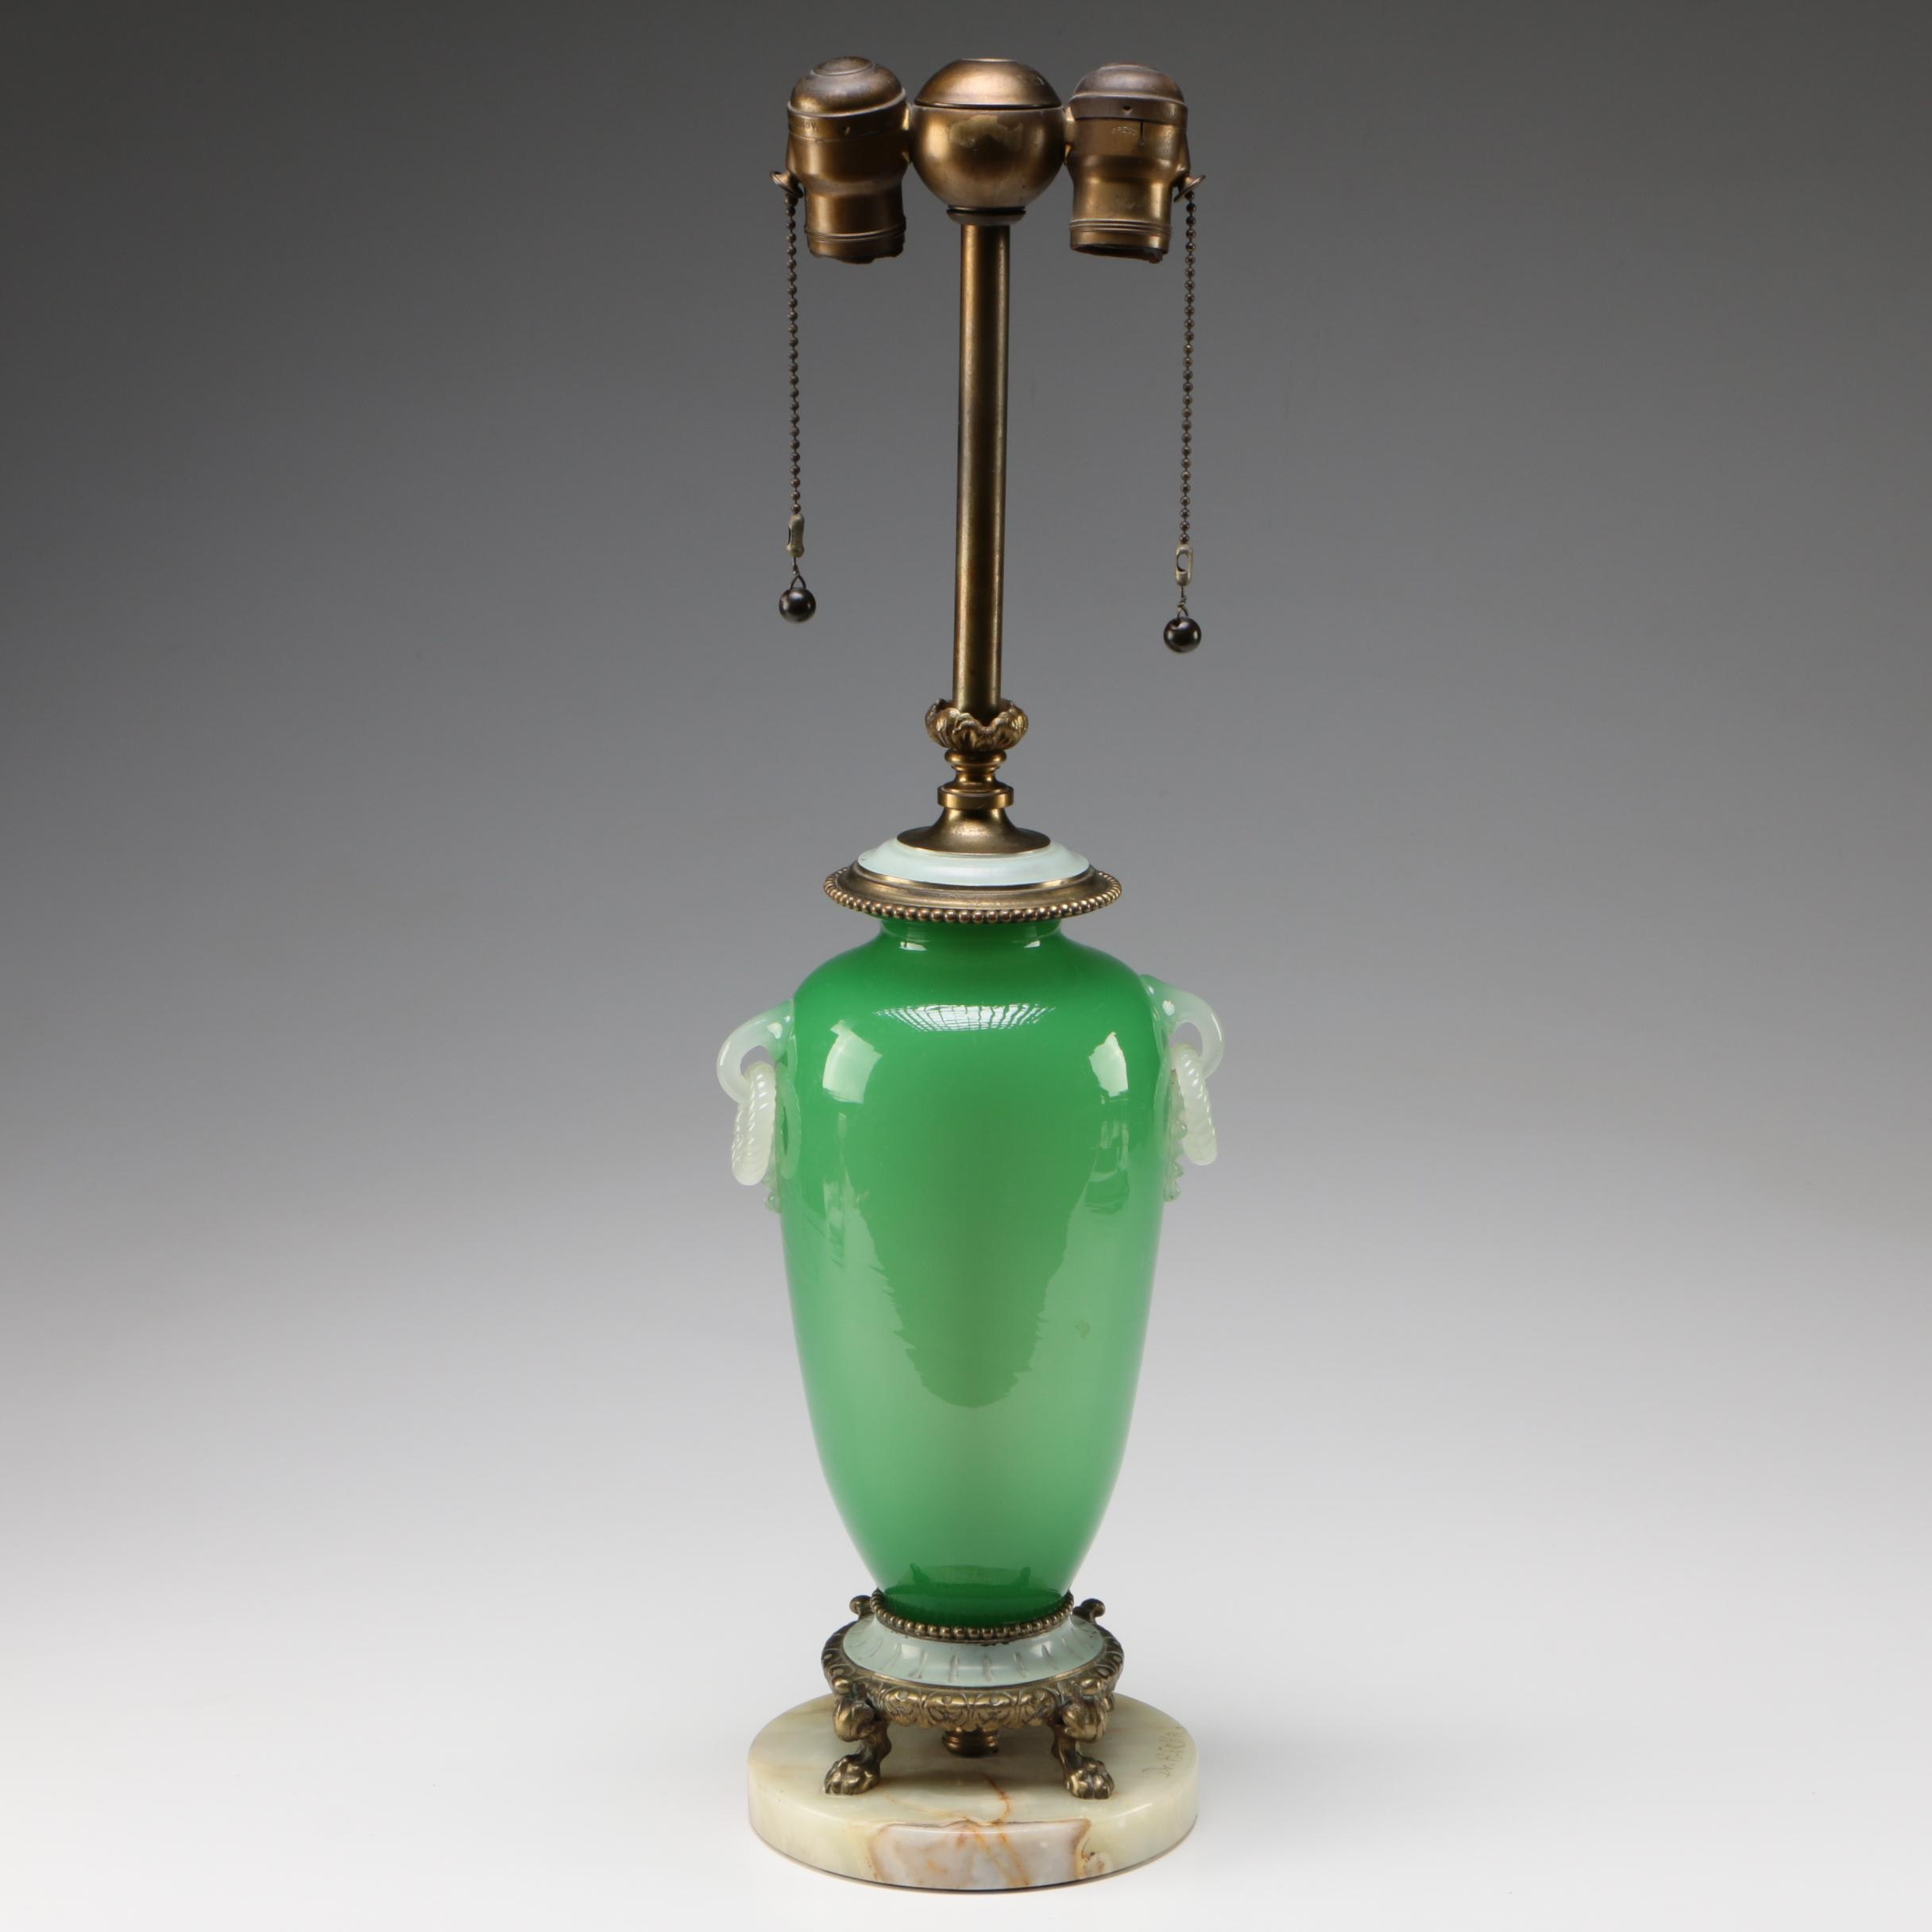 Steuben Green Jade Art Glass Table Lamp on Alabaster Base, 1903 - 1933